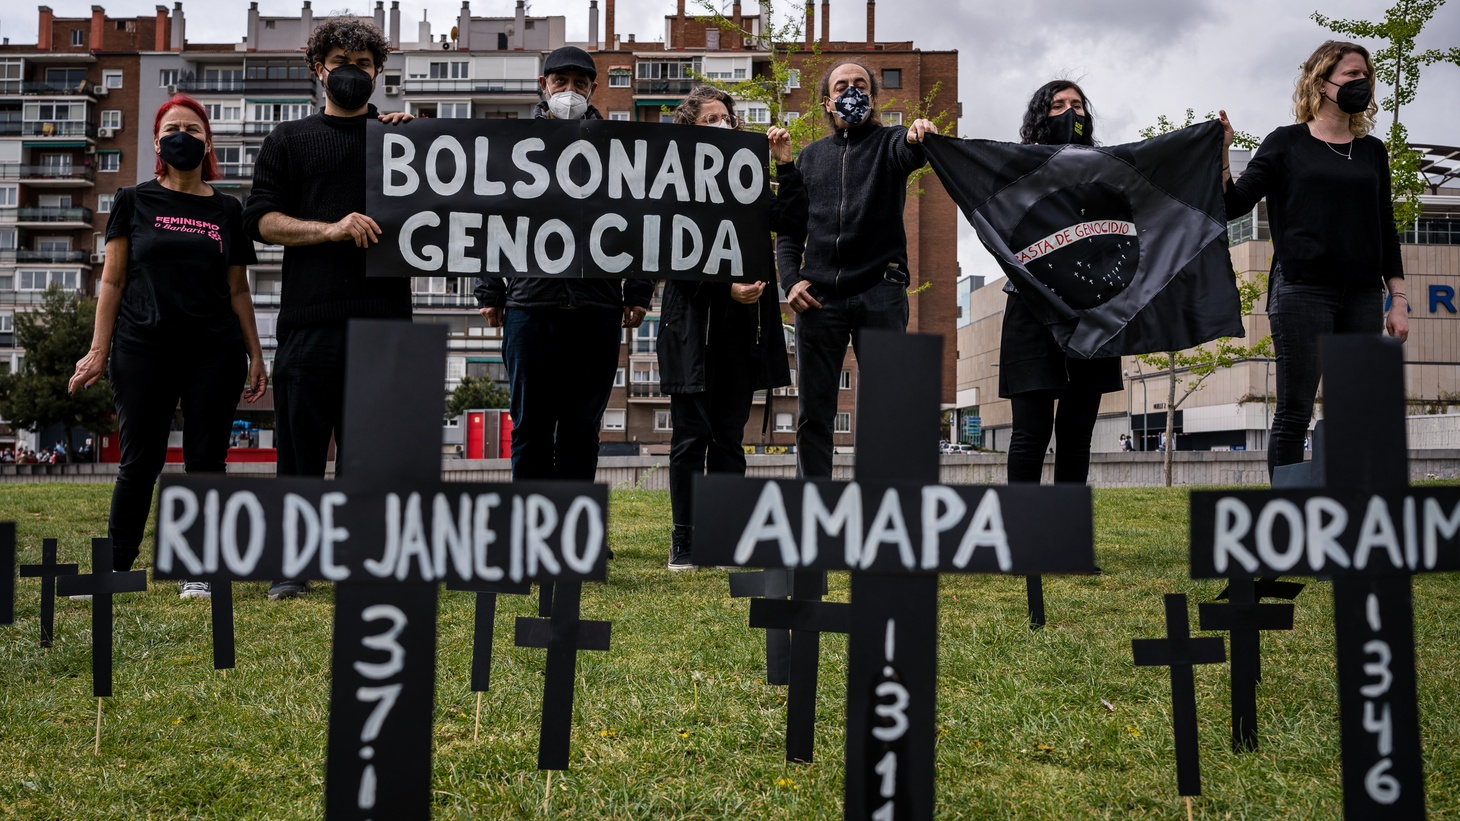 """Brazilian citizens are holding a """"Bolsonaro Genocidal"""" banner in Madrid Rio Park, where community members are remembering COVID-19 deaths in Brazil, and blaming President Jair Bolsonaro for the tragedy and poor management of the pandemic. April 1, 2021."""